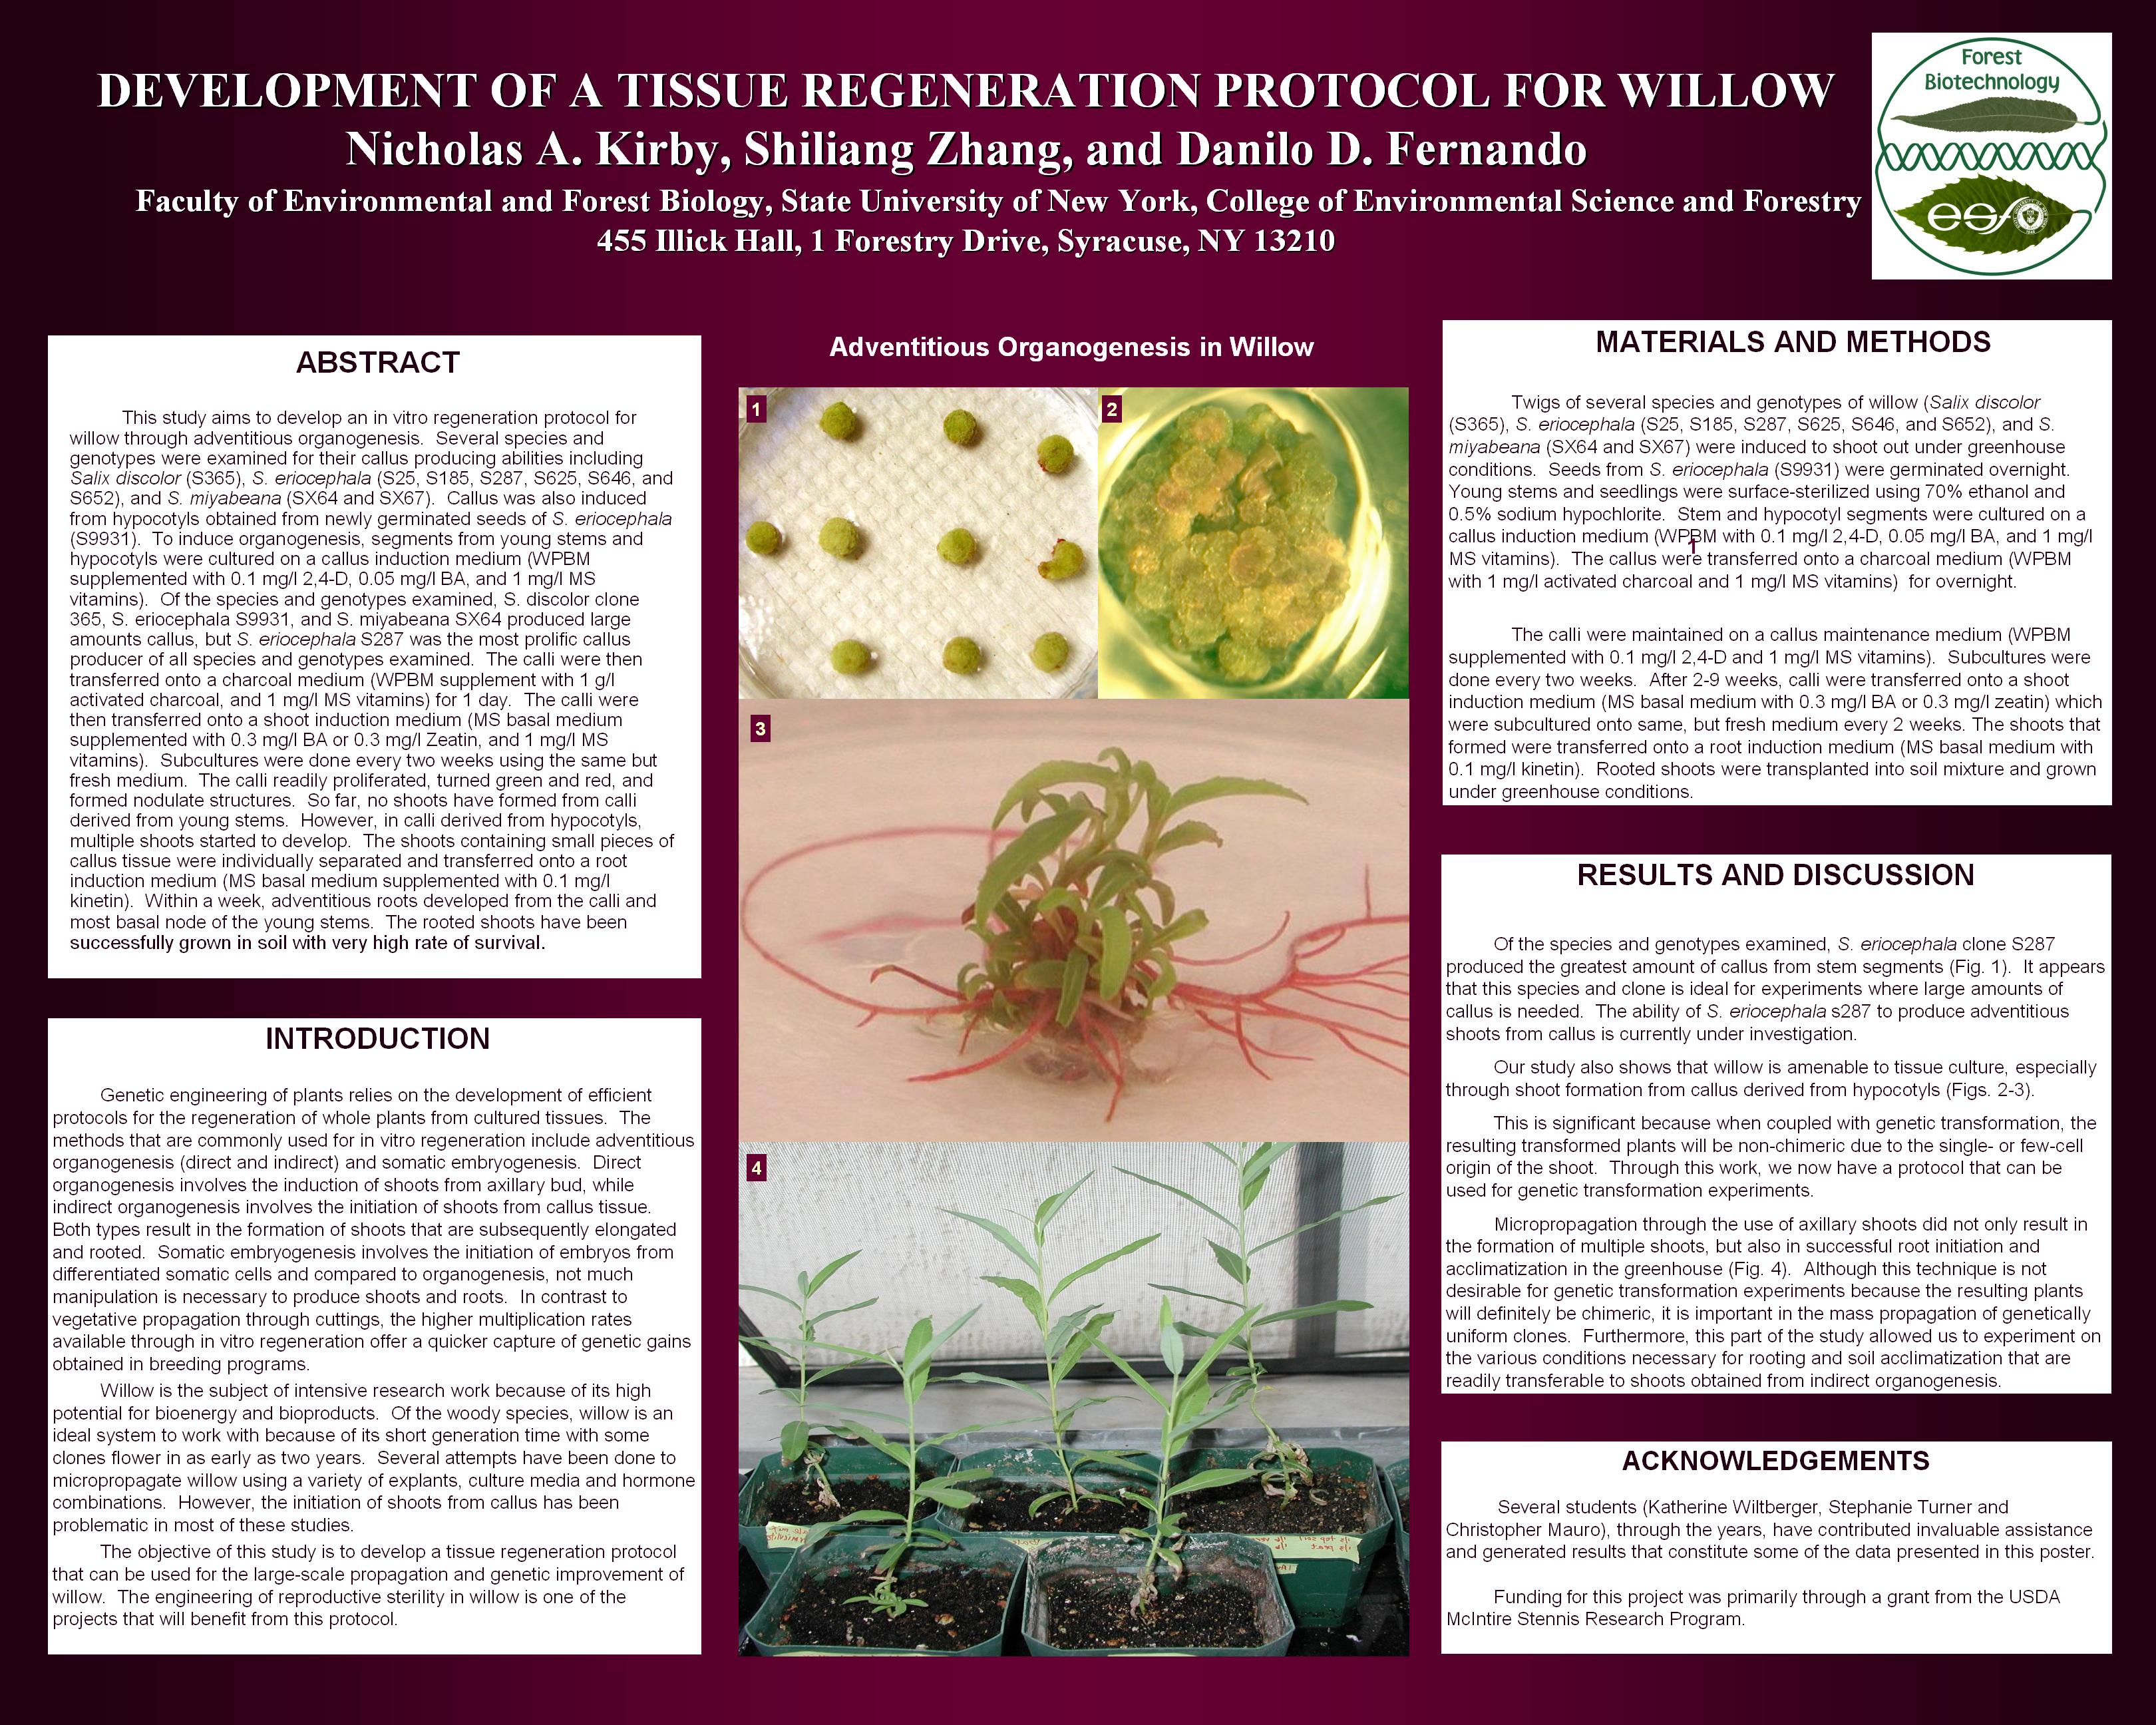 forest biotechnology 1 the value of forest biotechnology: a cost modeling study with loblolly pine and kraft linerboard in the southeastern usa gary f peter1,2,, david e white2,3, rafael de la torre4, rajan singh3, david newman2,4.